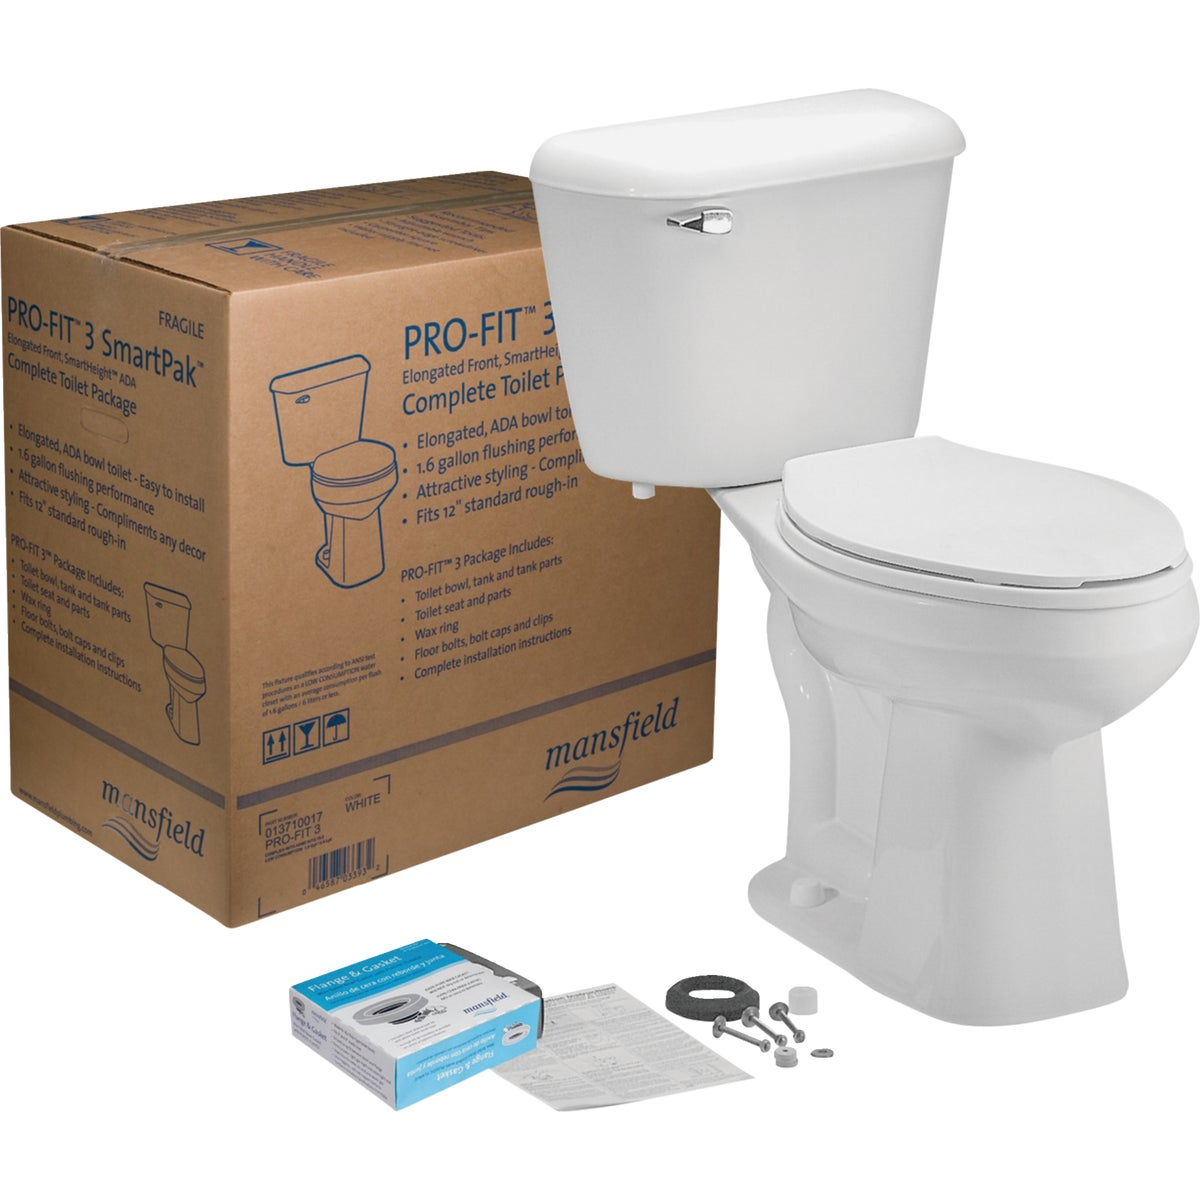 WHITE PRO-FIT 3 TOILET - 013710017 by Mansfield Plumbing